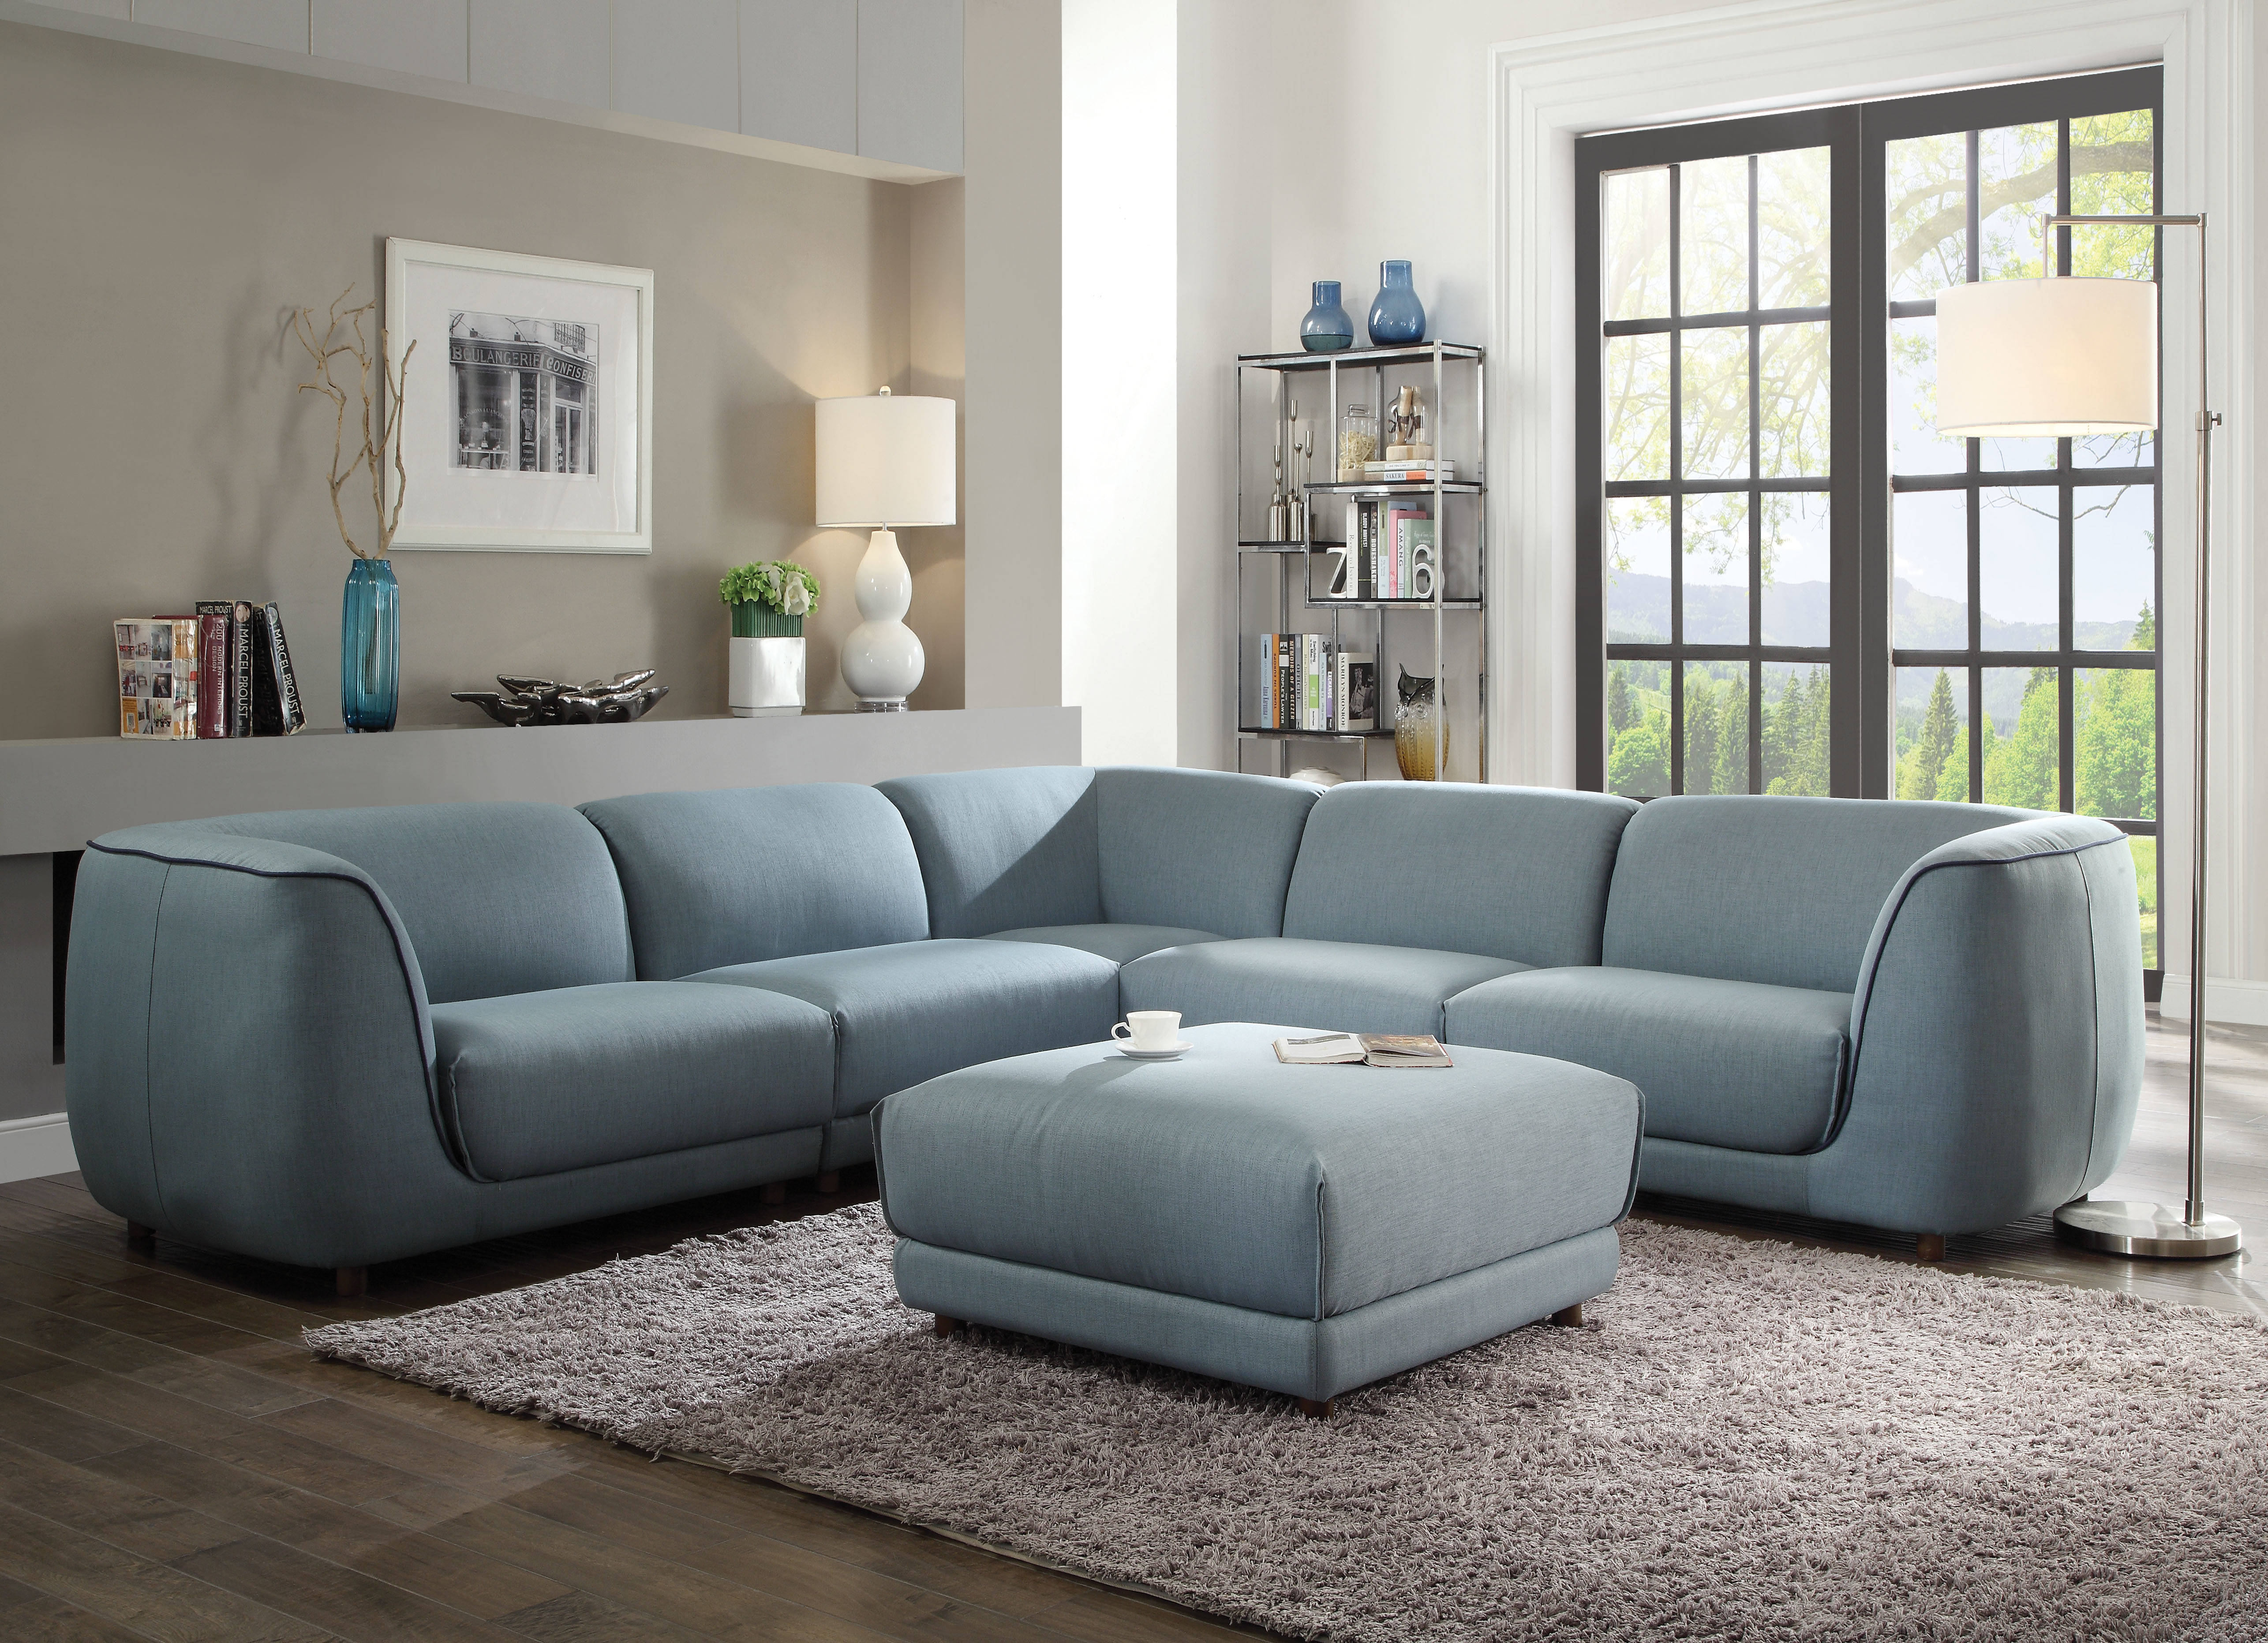 Super Acme Furniture Adina Light Blue Sectional Sofa With Ottoman Ncnpc Chair Design For Home Ncnpcorg